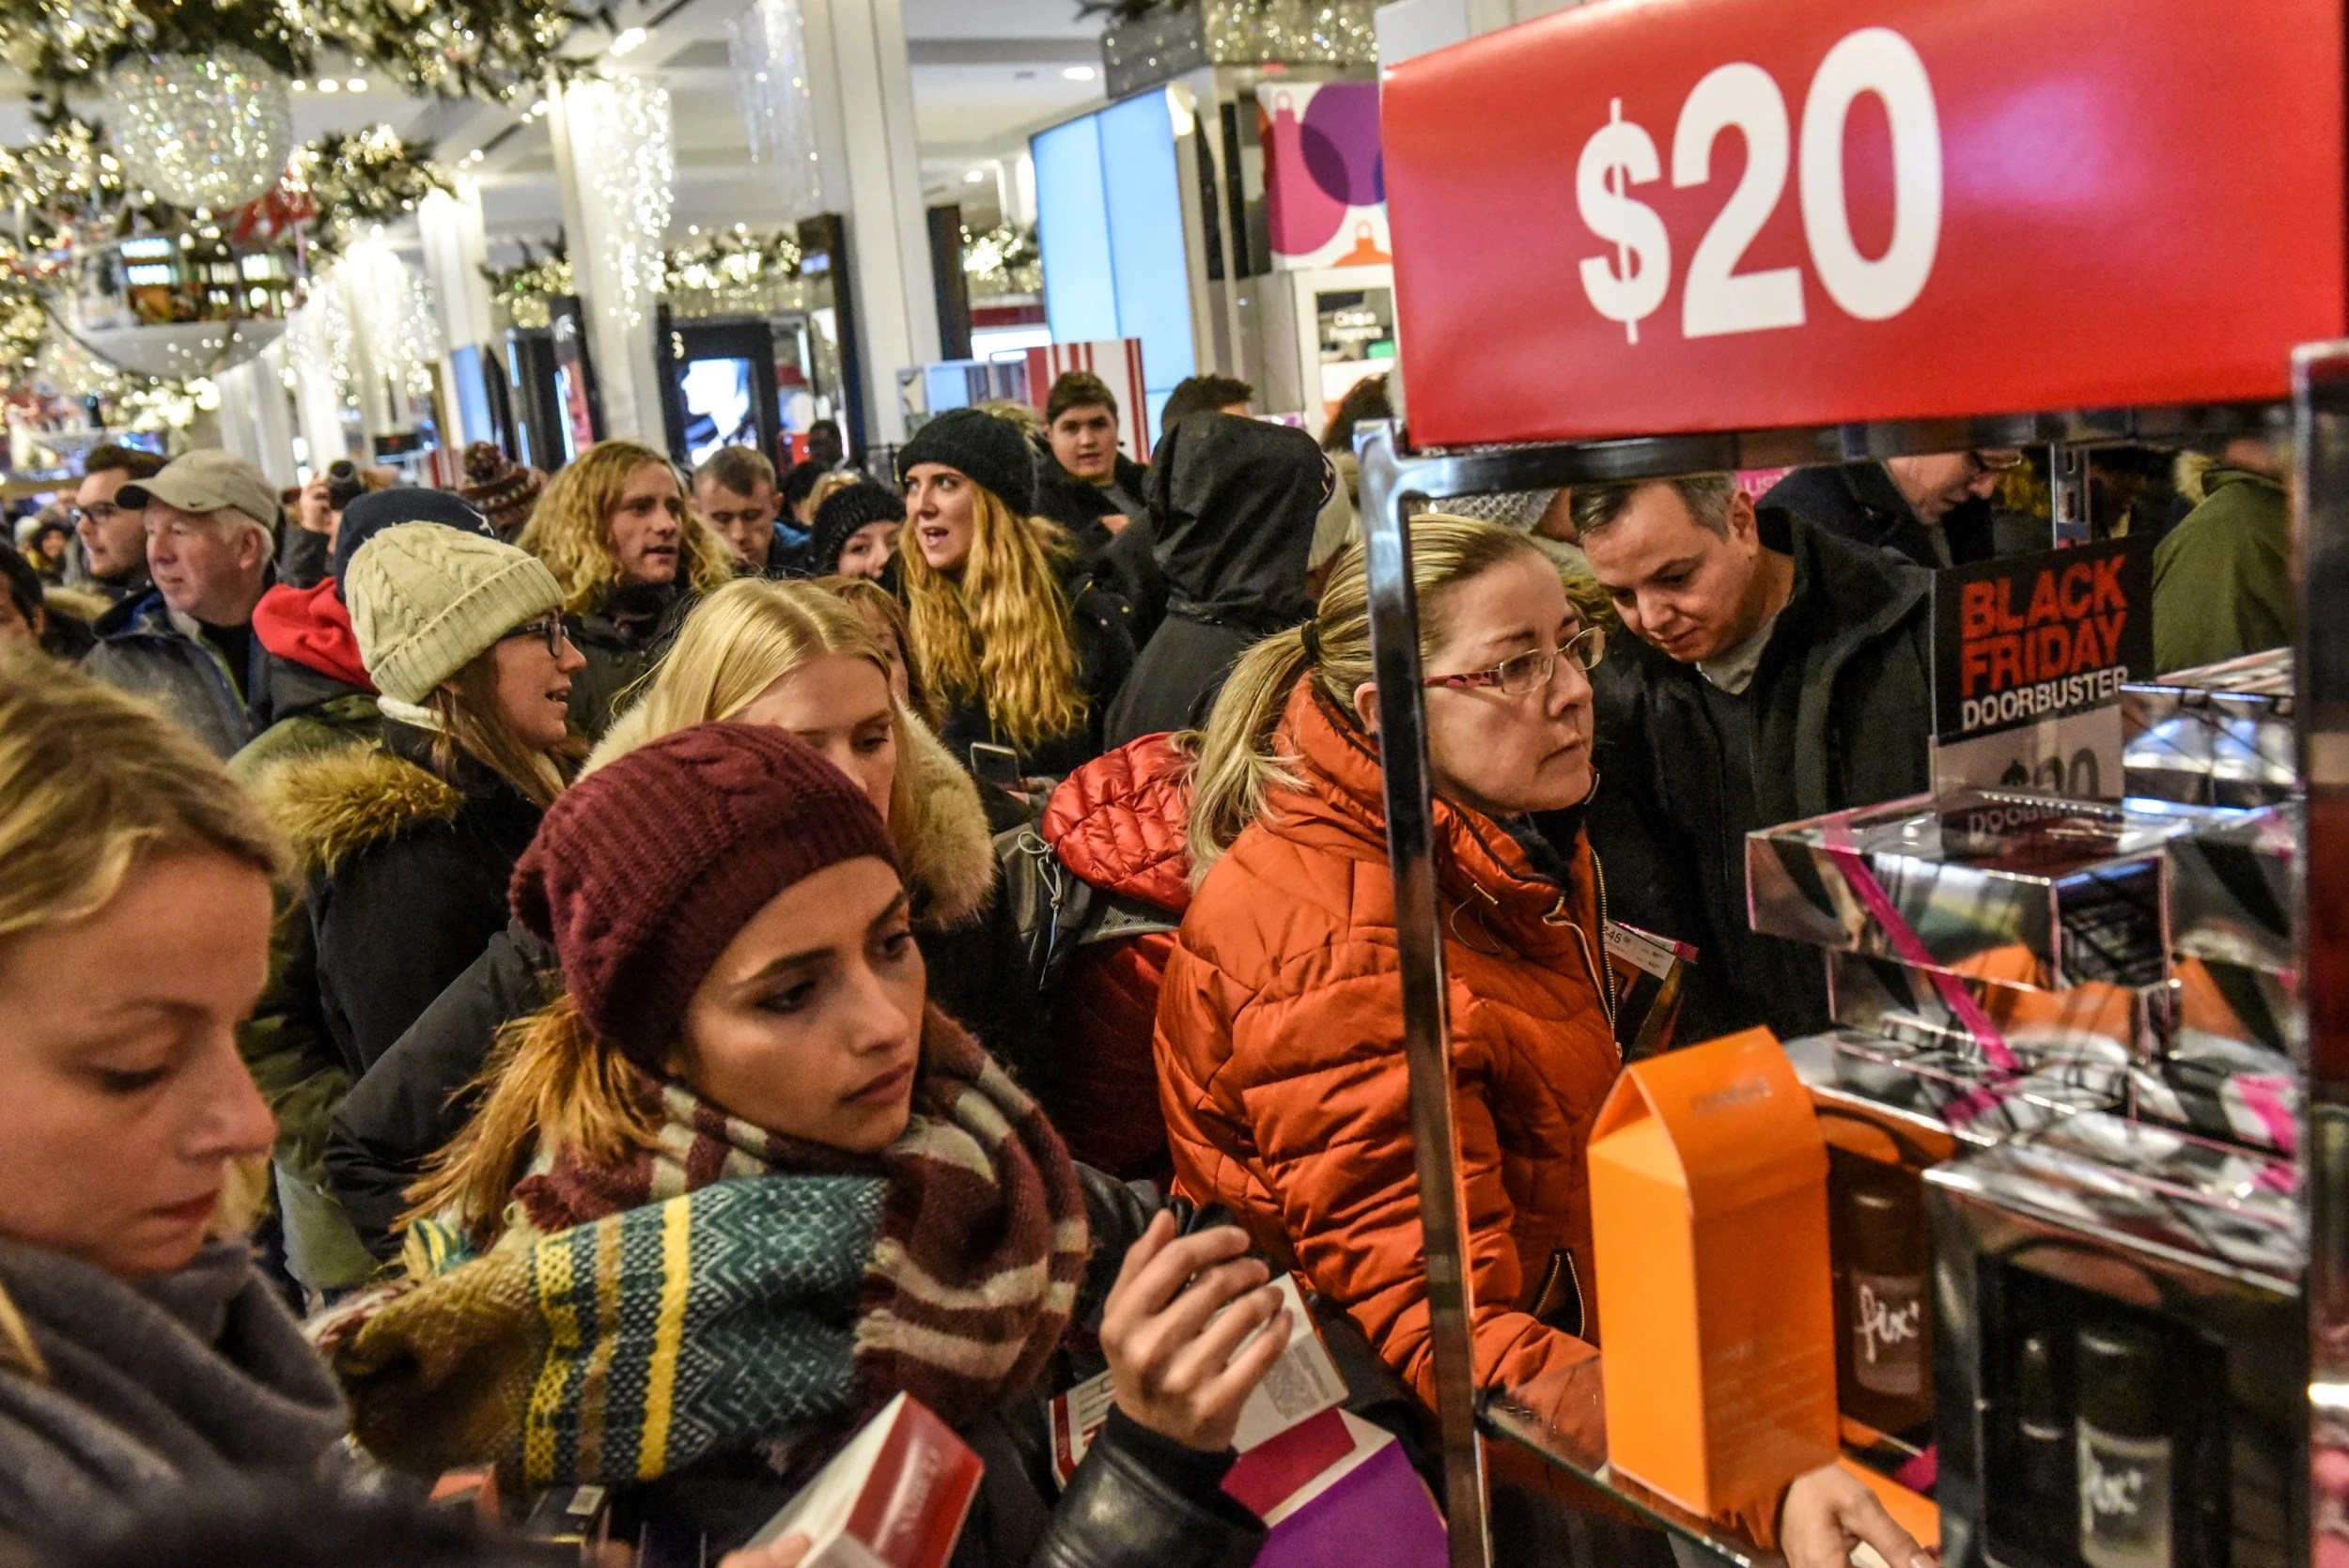 Black Friday Stuttgart Cyber Monday When Is It And How Is It Different From Black Friday